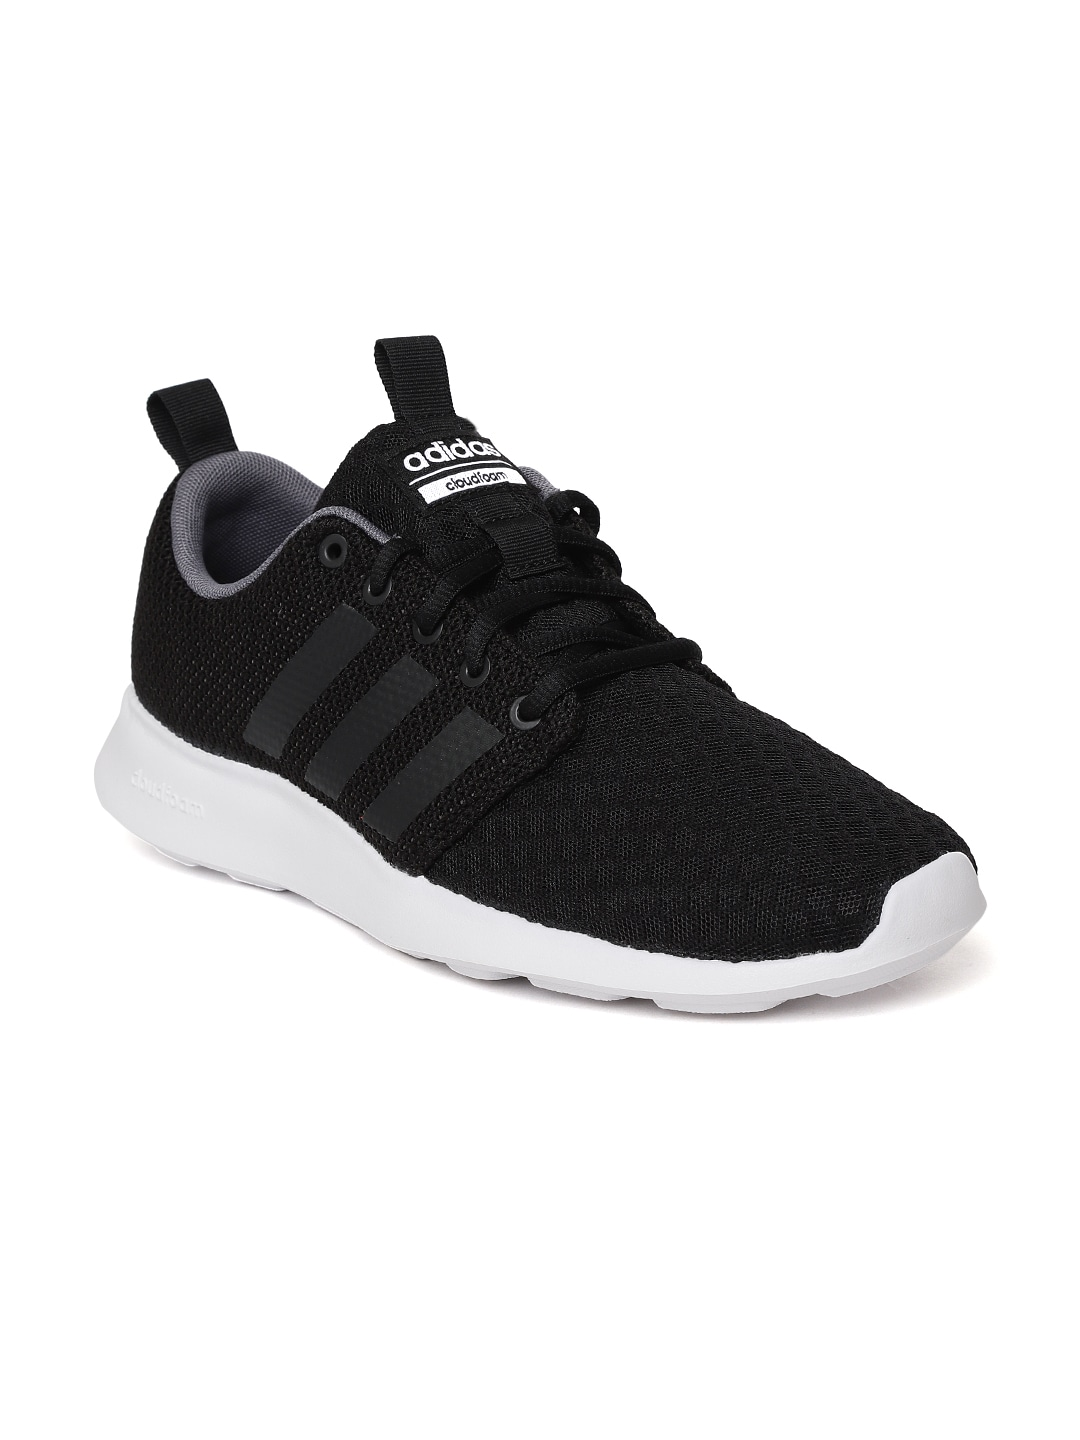 8e5afc6176379 Adidas Footwear - Buy Adidas Footwear Online in India